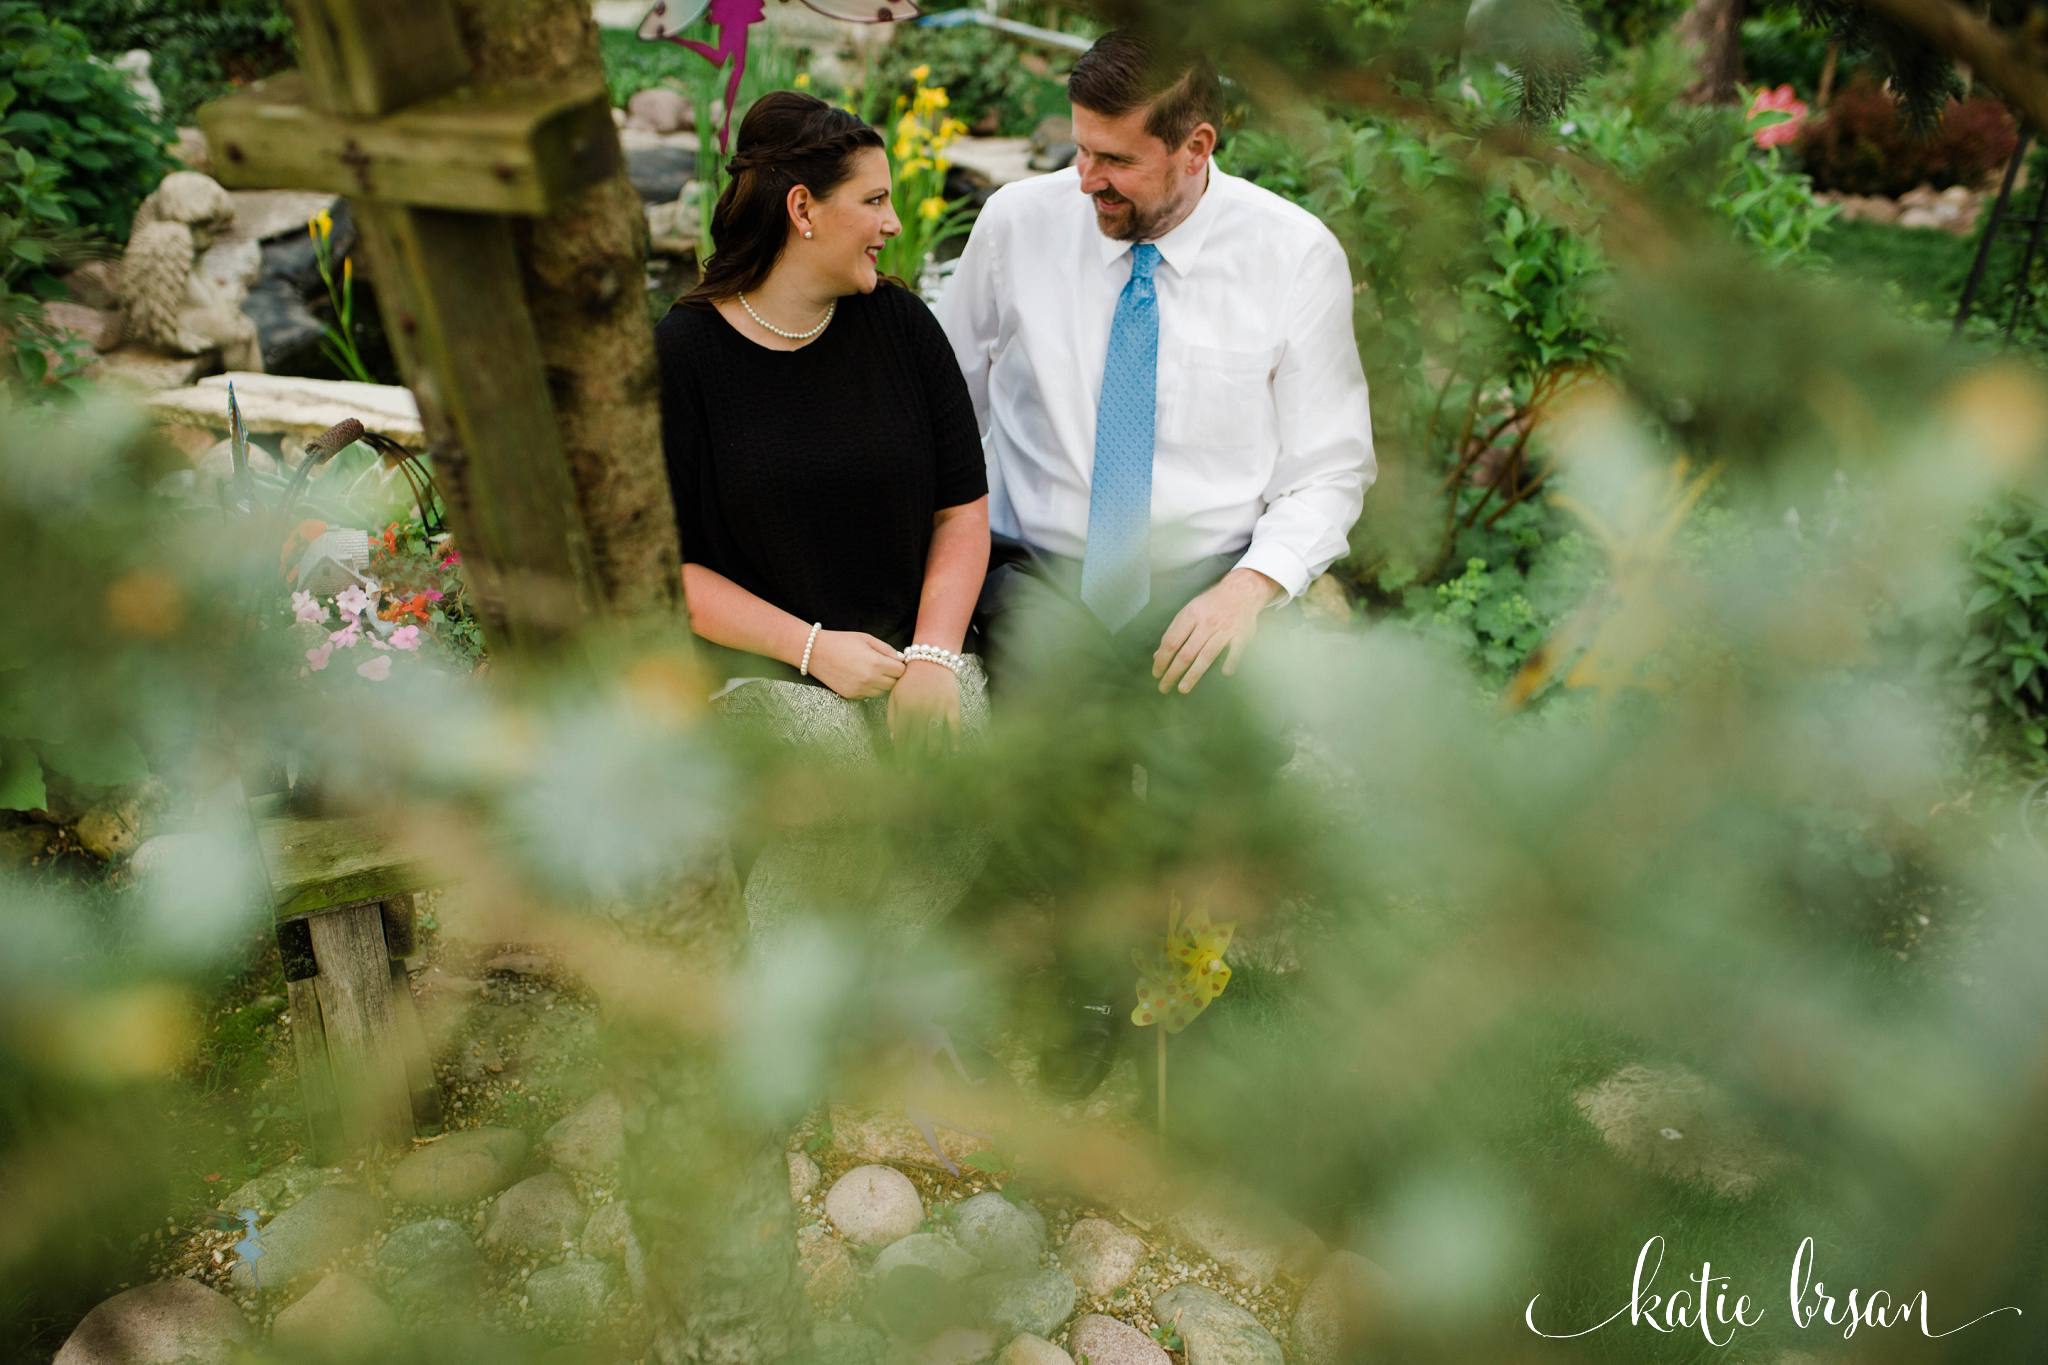 KatieBrsan-HomerGlen-NewLenox-EngagementSession-HadleyValley-TeacherEngagementSession-ChicagoWeddingPhotographer_0585.jpg